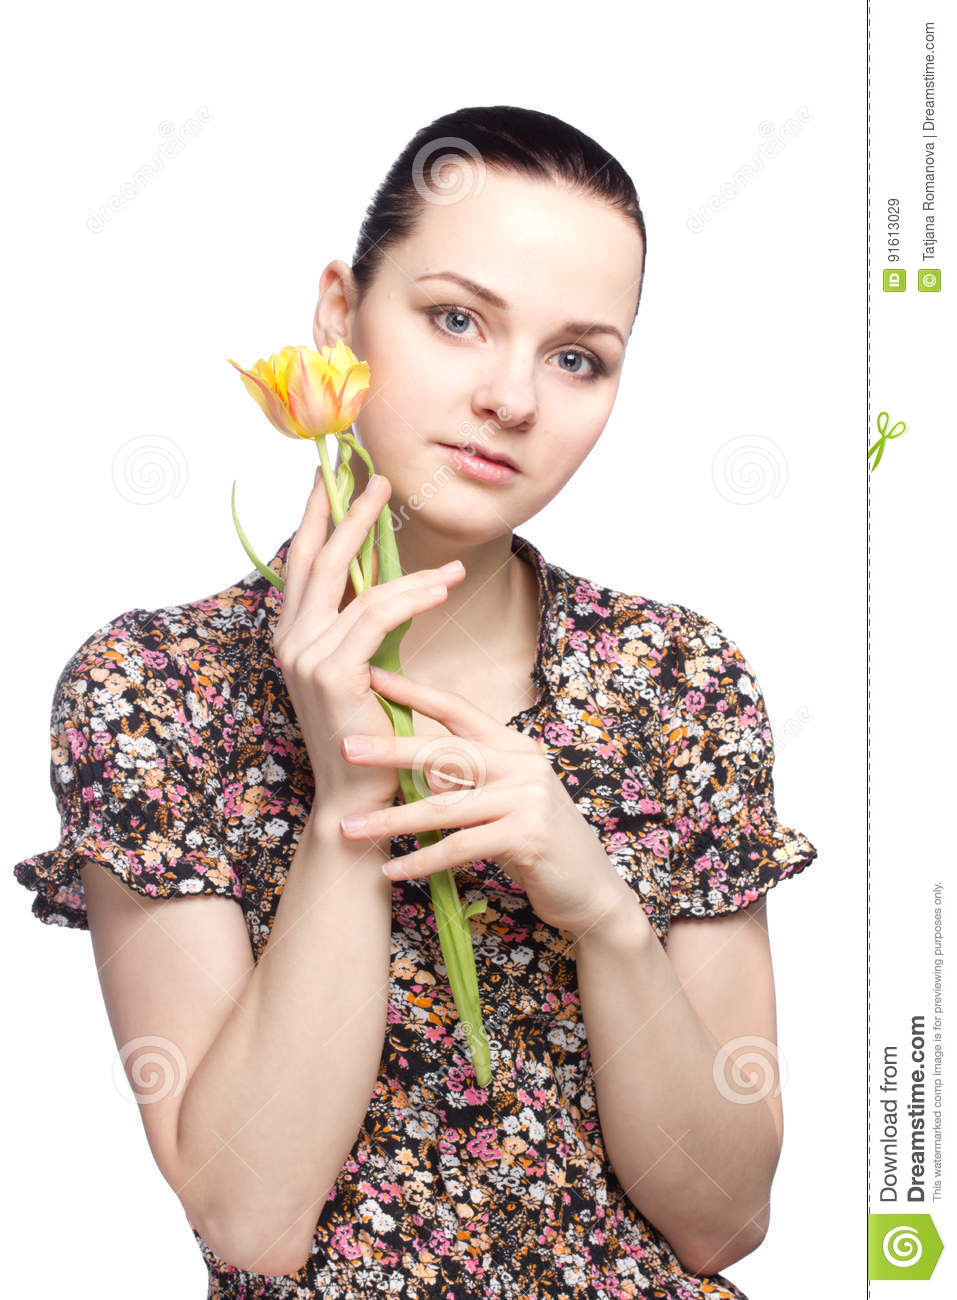 Attractive young woman holding a yellow tulip